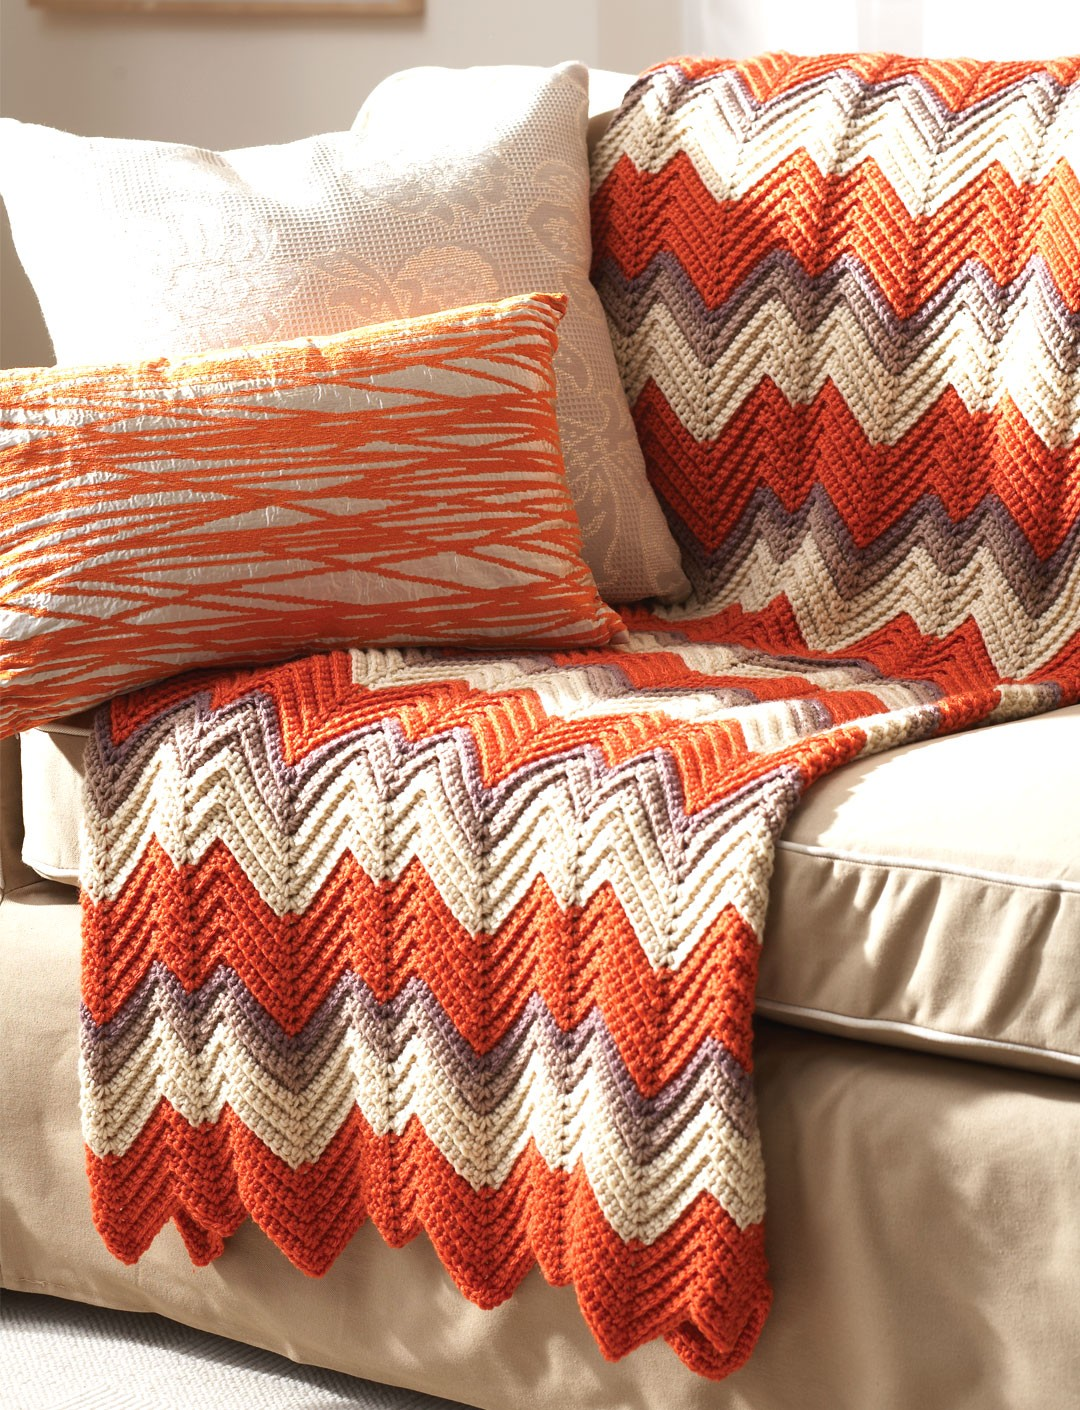 Knitted Zig Zag Afghan Pattern : Zig-Zag Afghan - Patterns Yarnspirations